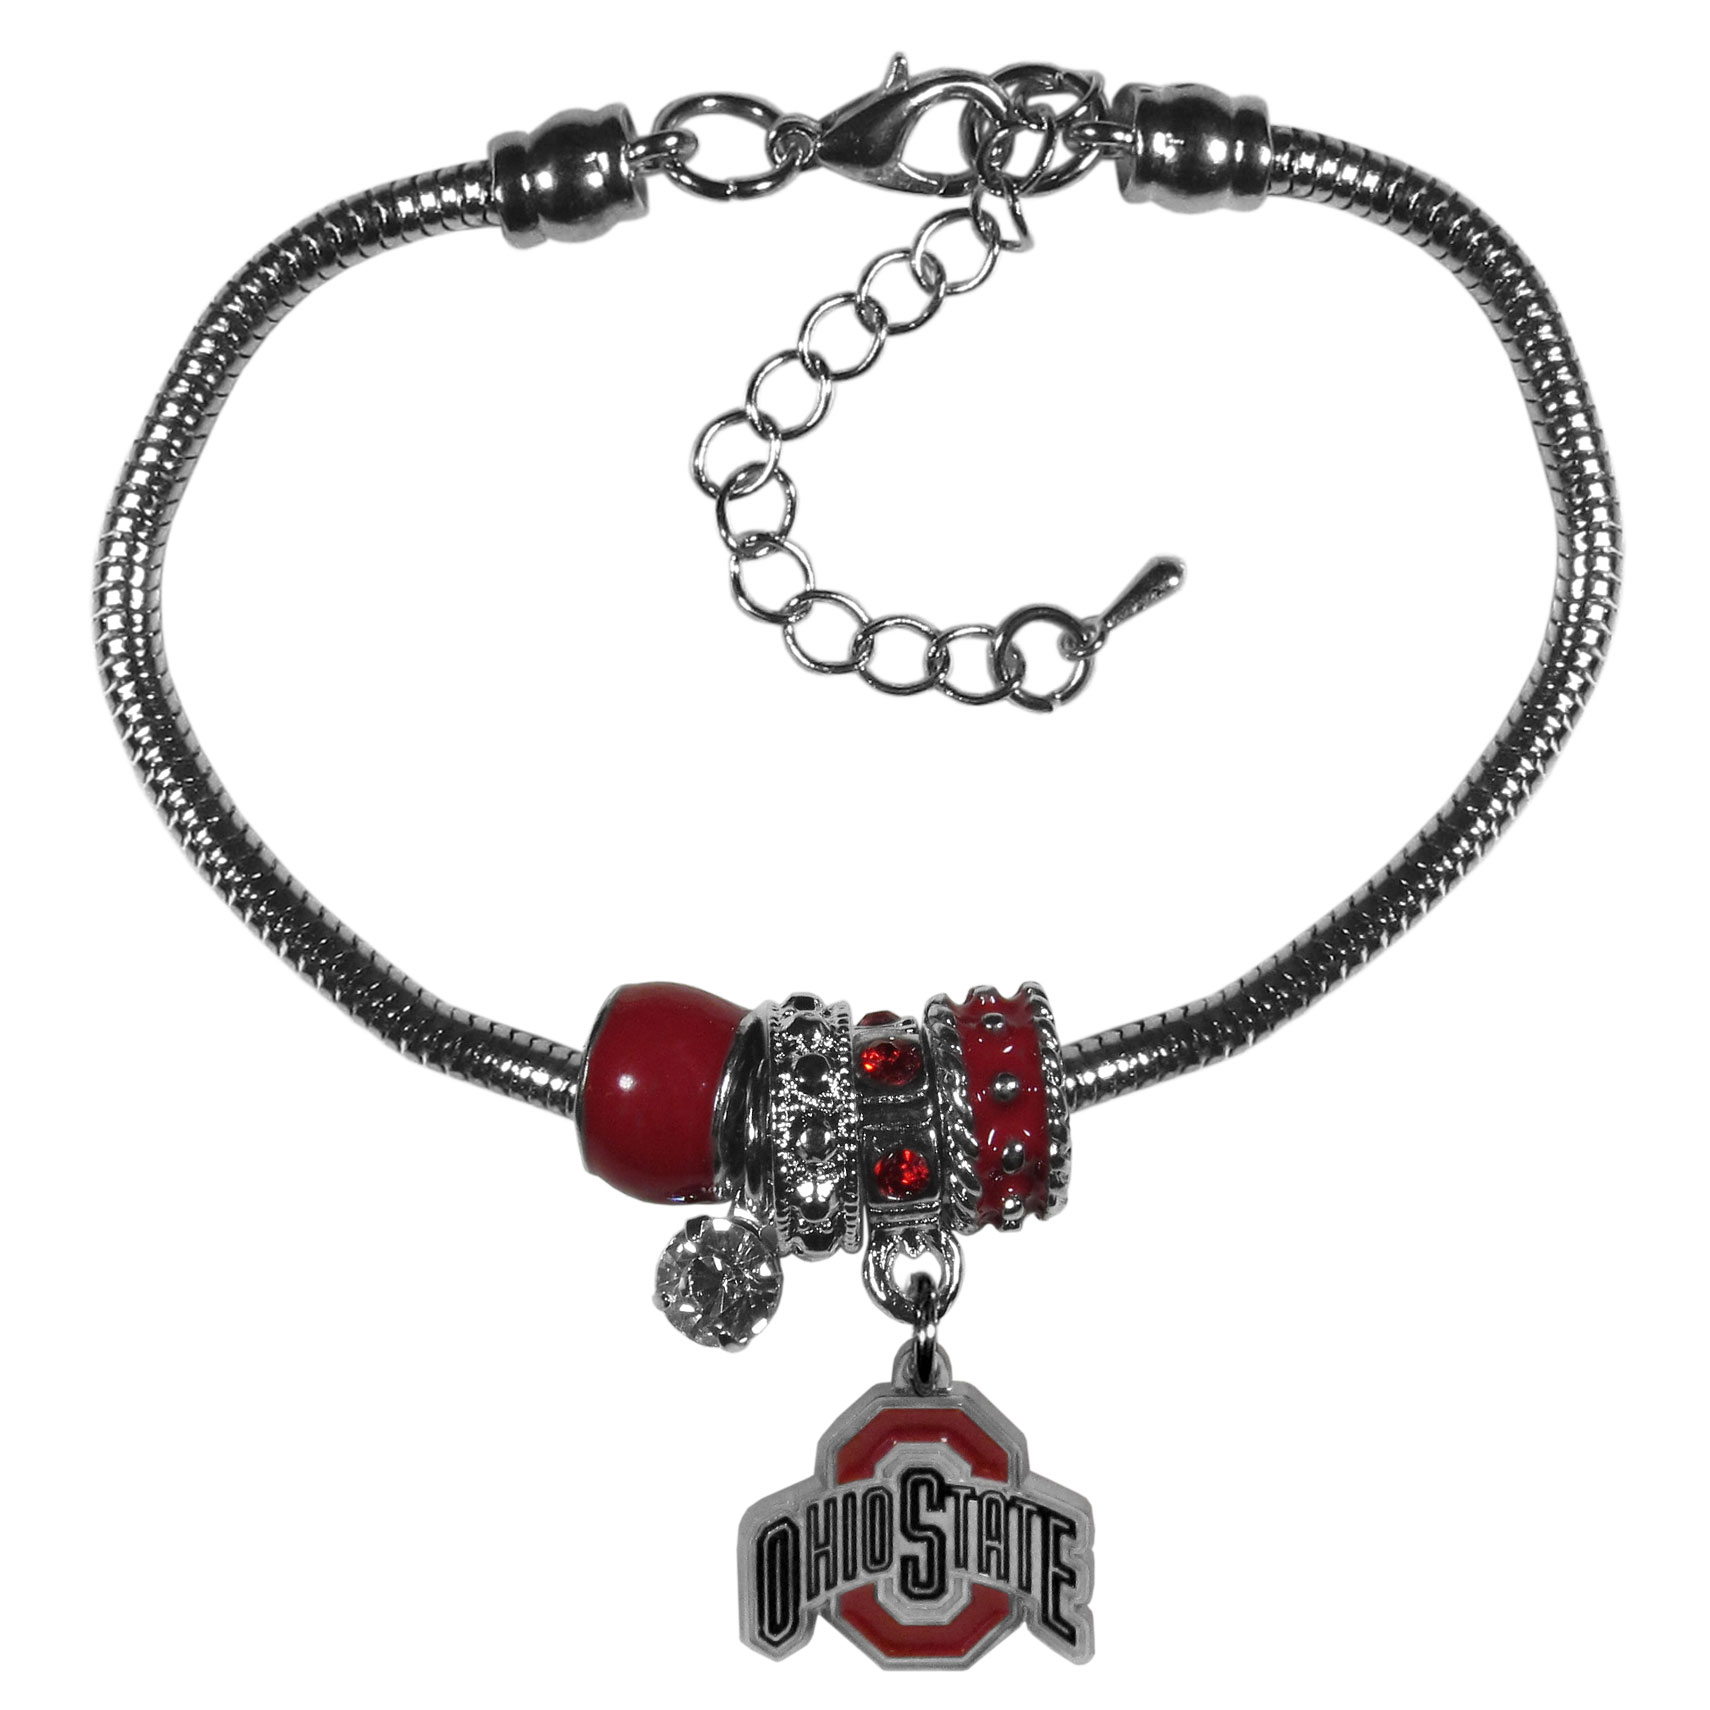 Ohio St. Buckeyes Euro Bead Bracelet - We have combined the wildly popular Euro style beads with your favorite team to create our  Ohio St. Buckeyes bead bracelet. The 7.5 inch snake chain with 2 inch extender features 4 Euro beads with enameled team colors and rhinestone accents with a high polish, nickel free charm and rhinestone charm. Perfect way to show off your team pride.